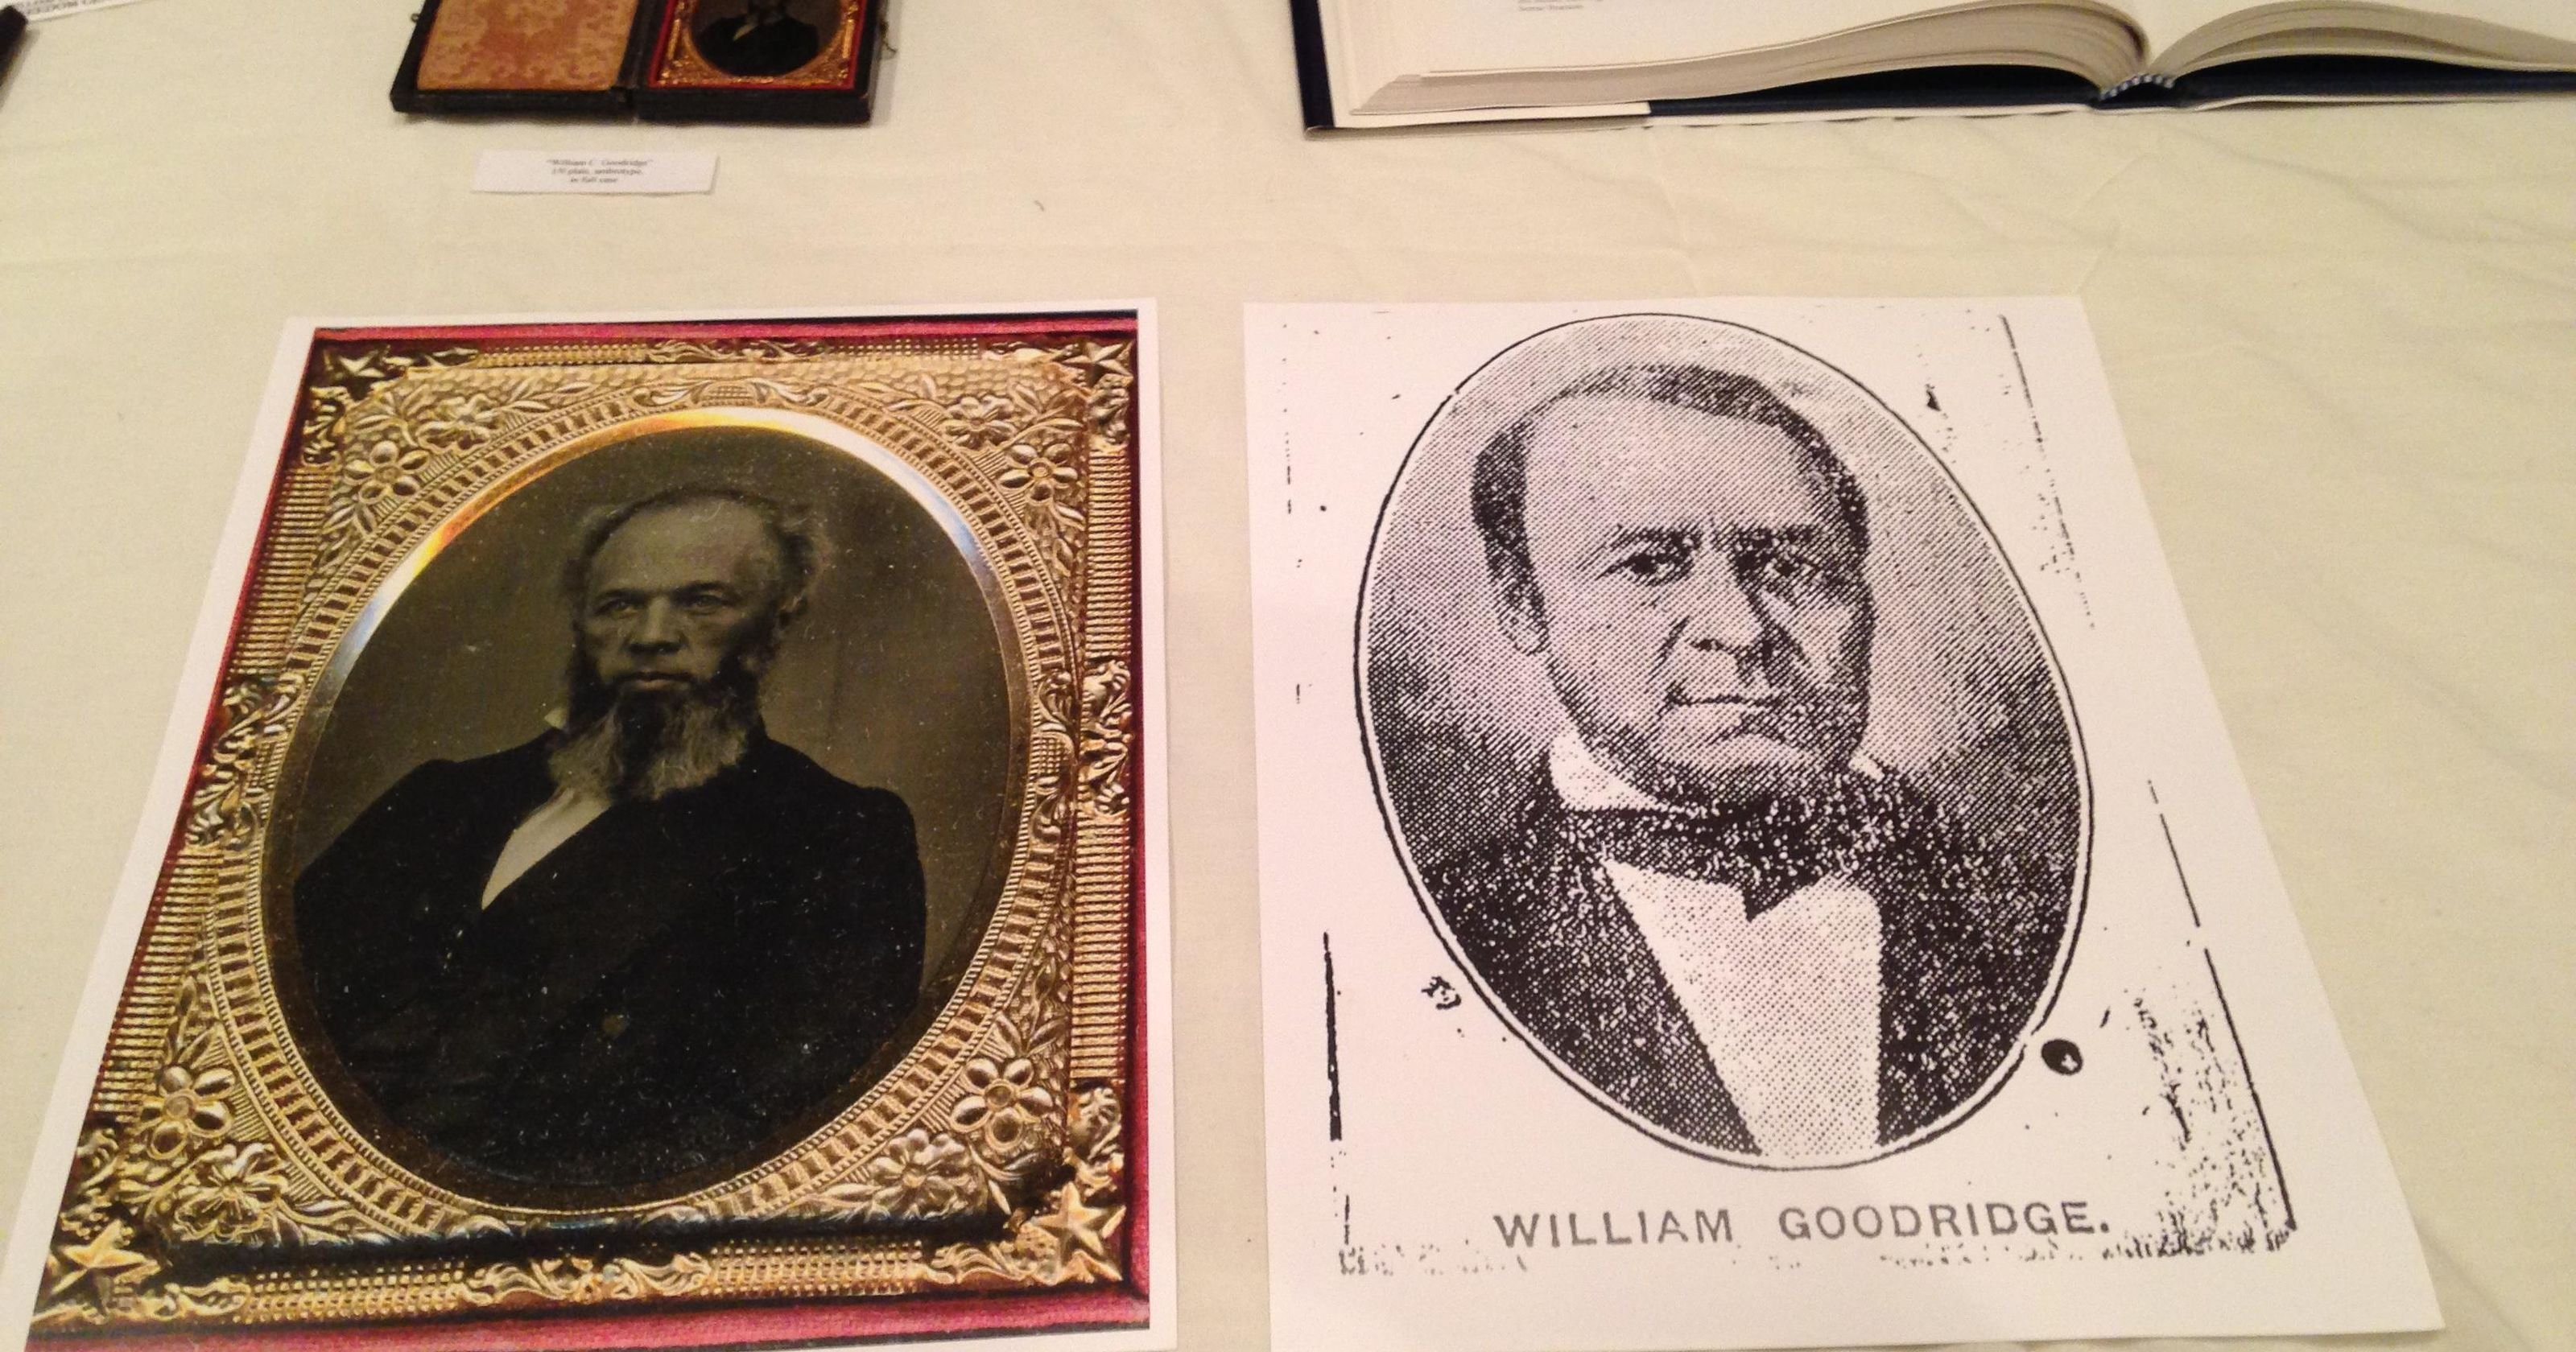 Two images of William C. Goodridge on display within the museum.